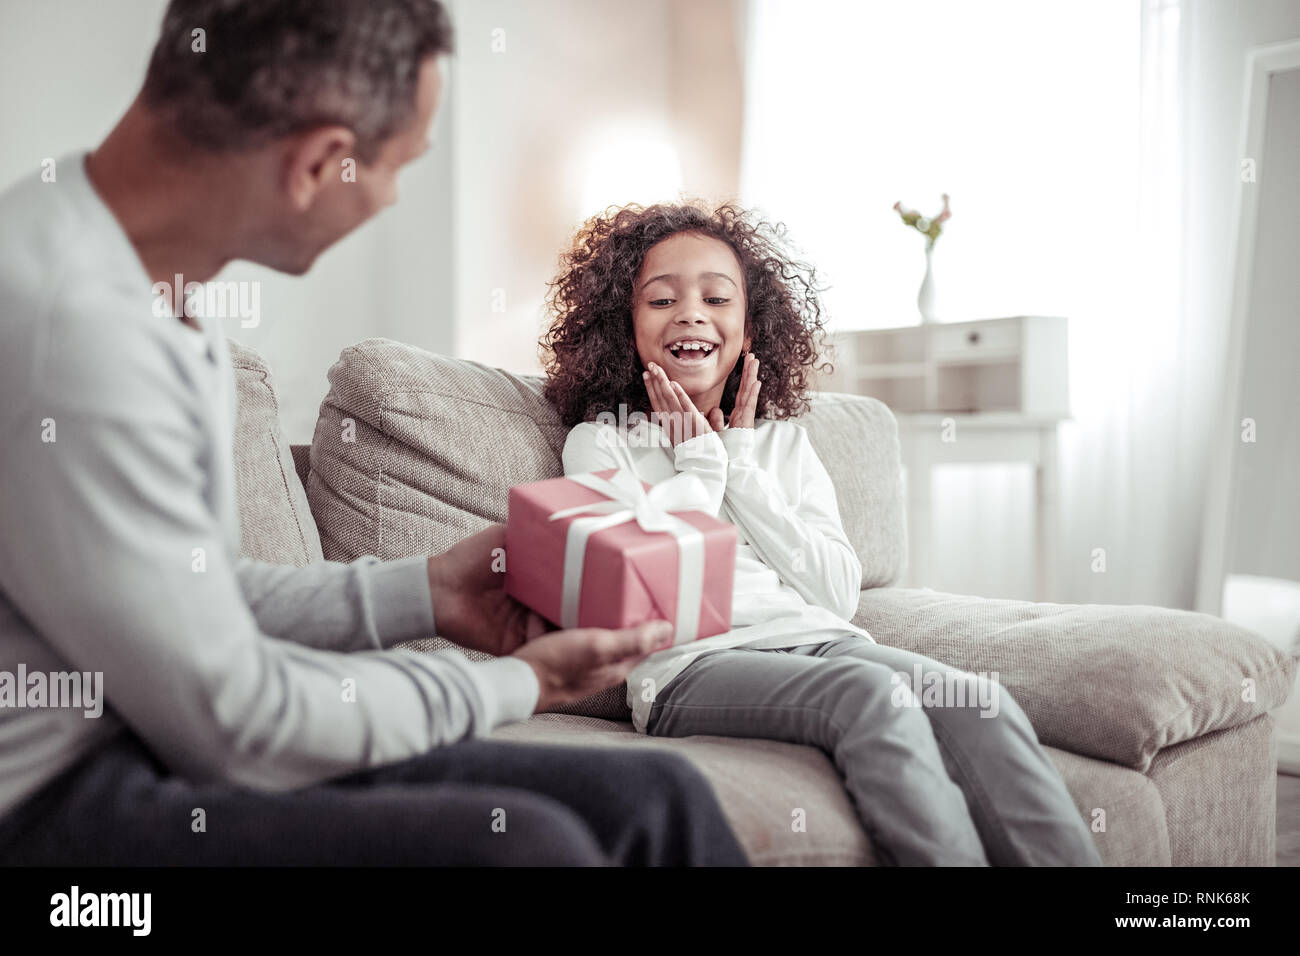 Happy little girl receiving a nice gift from her father - Stock Image